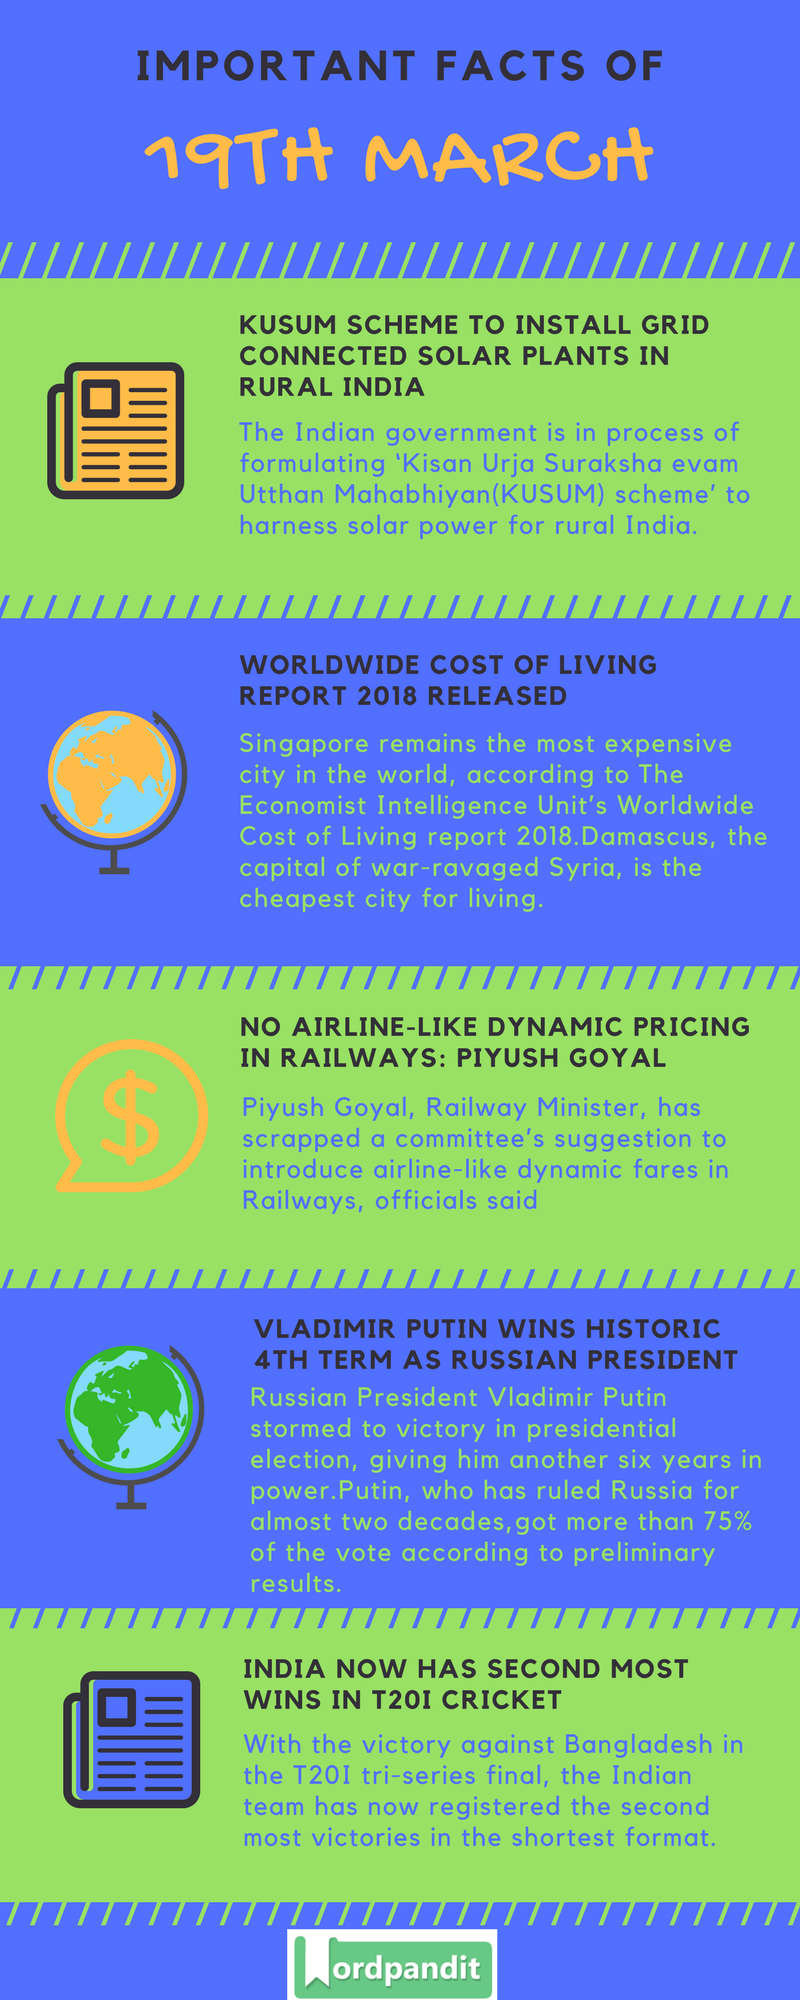 Daily Current Affairs 19 March 2018 Current Affairs Quiz March 19 2018 Current Affairs Infographic